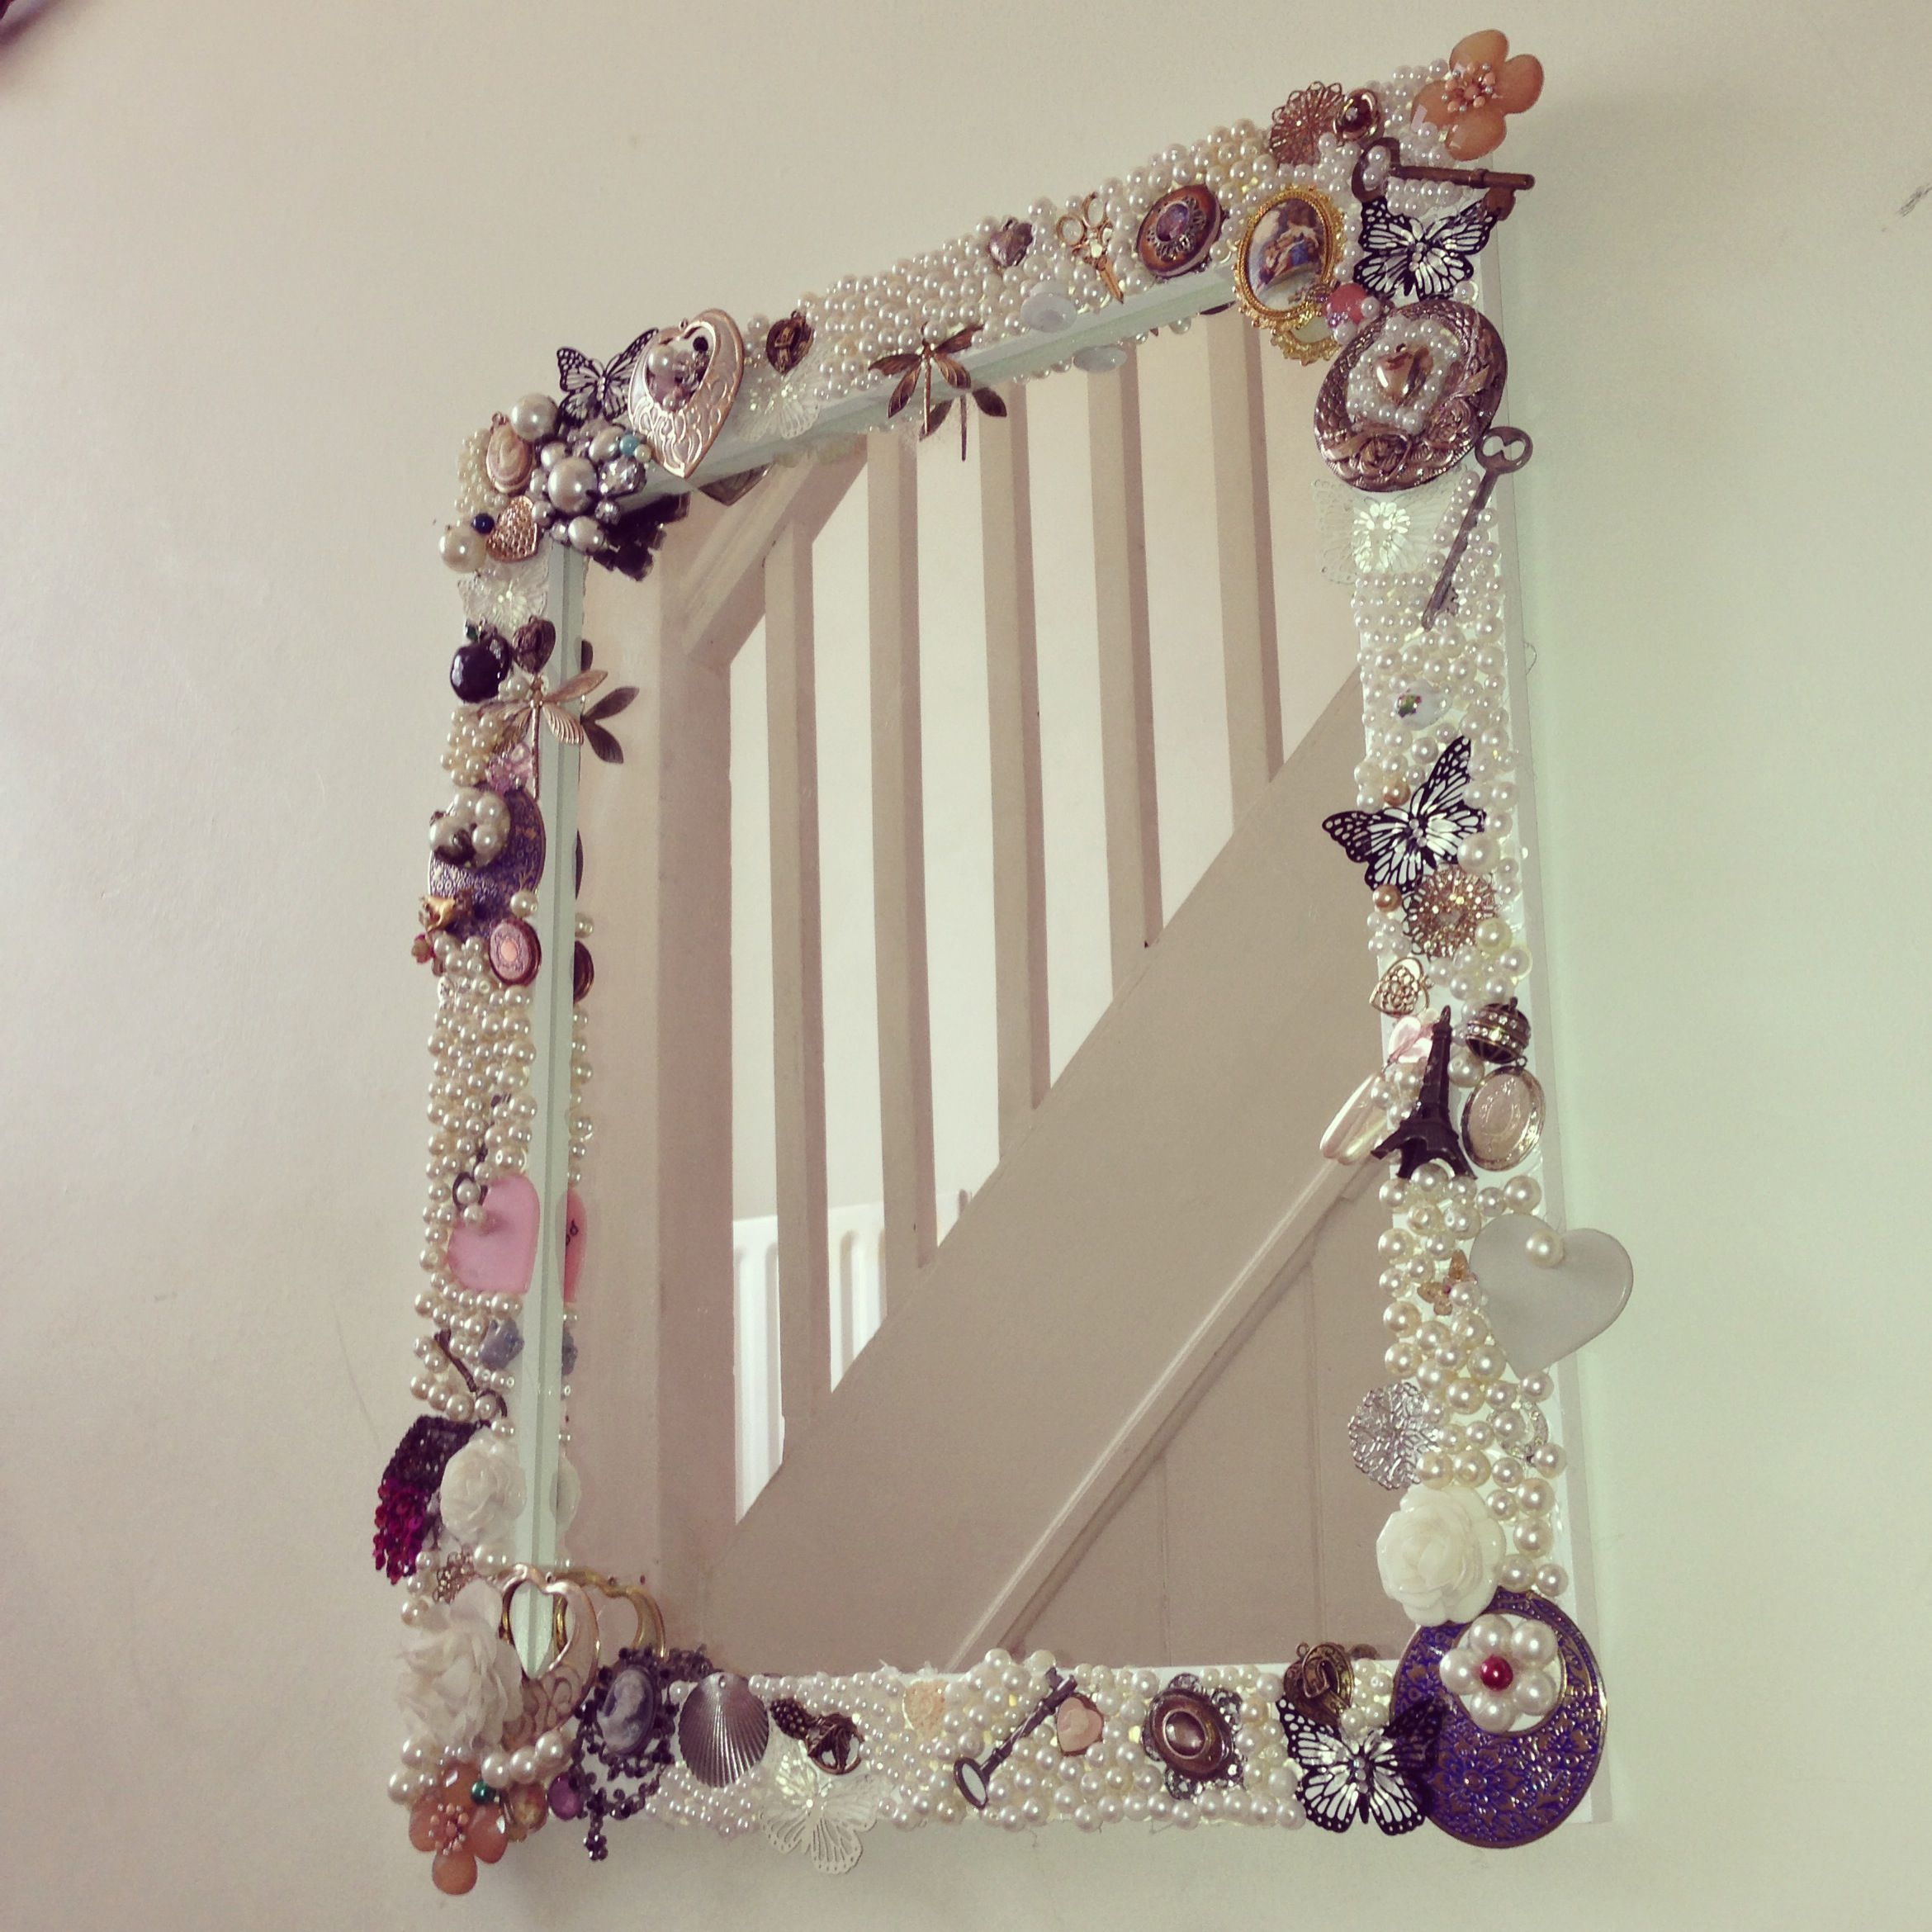 hand decorated mirror with broken jewellery and a glue gun